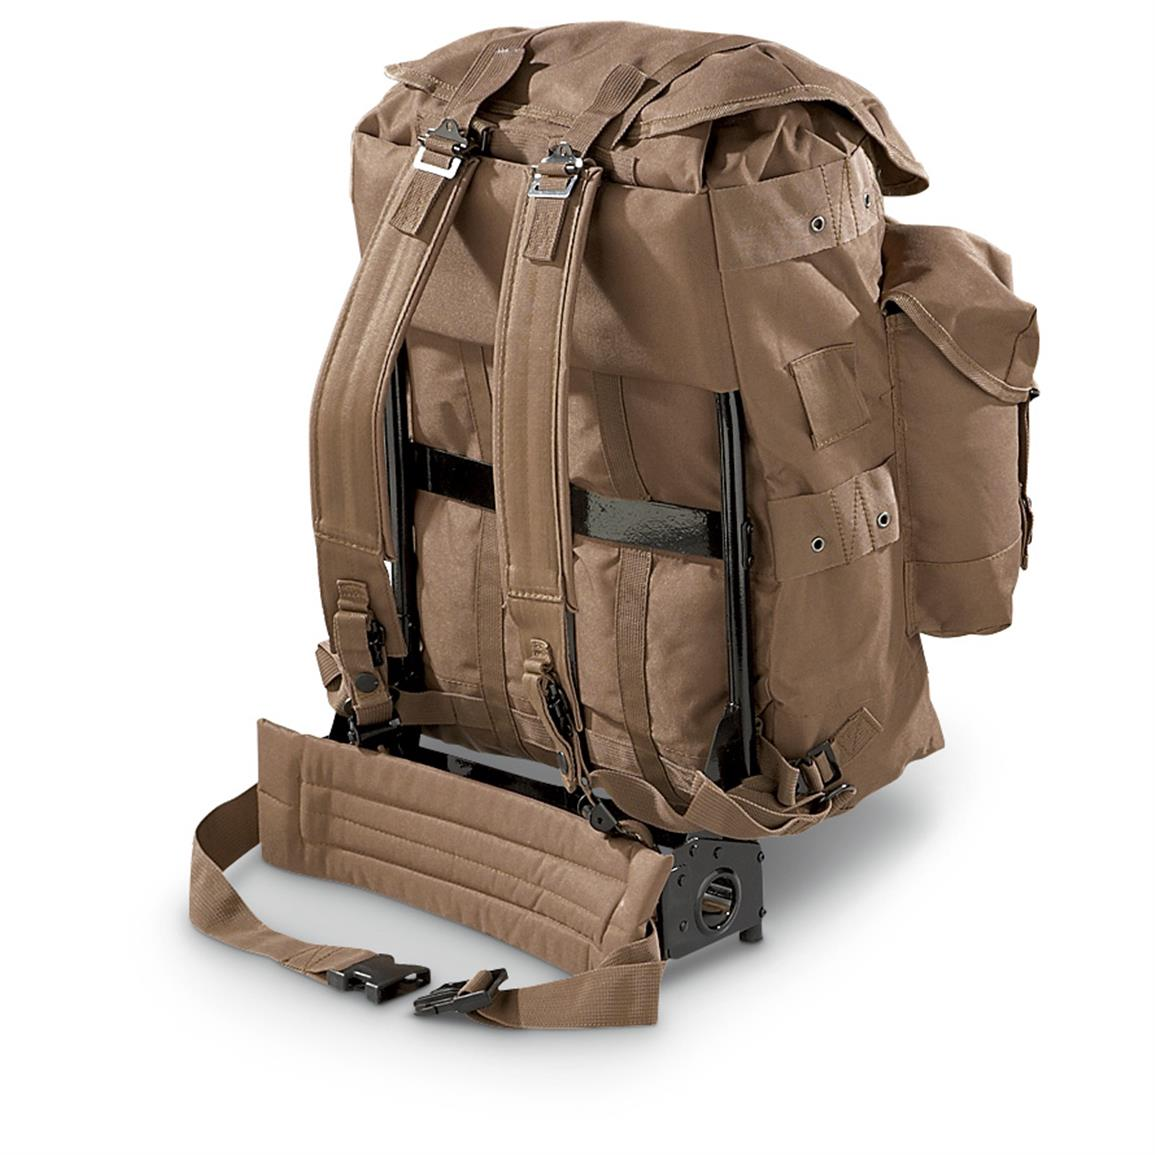 U.S. Military-style ALICE Pack - 616625, Rucksacks & Backpacks at ...